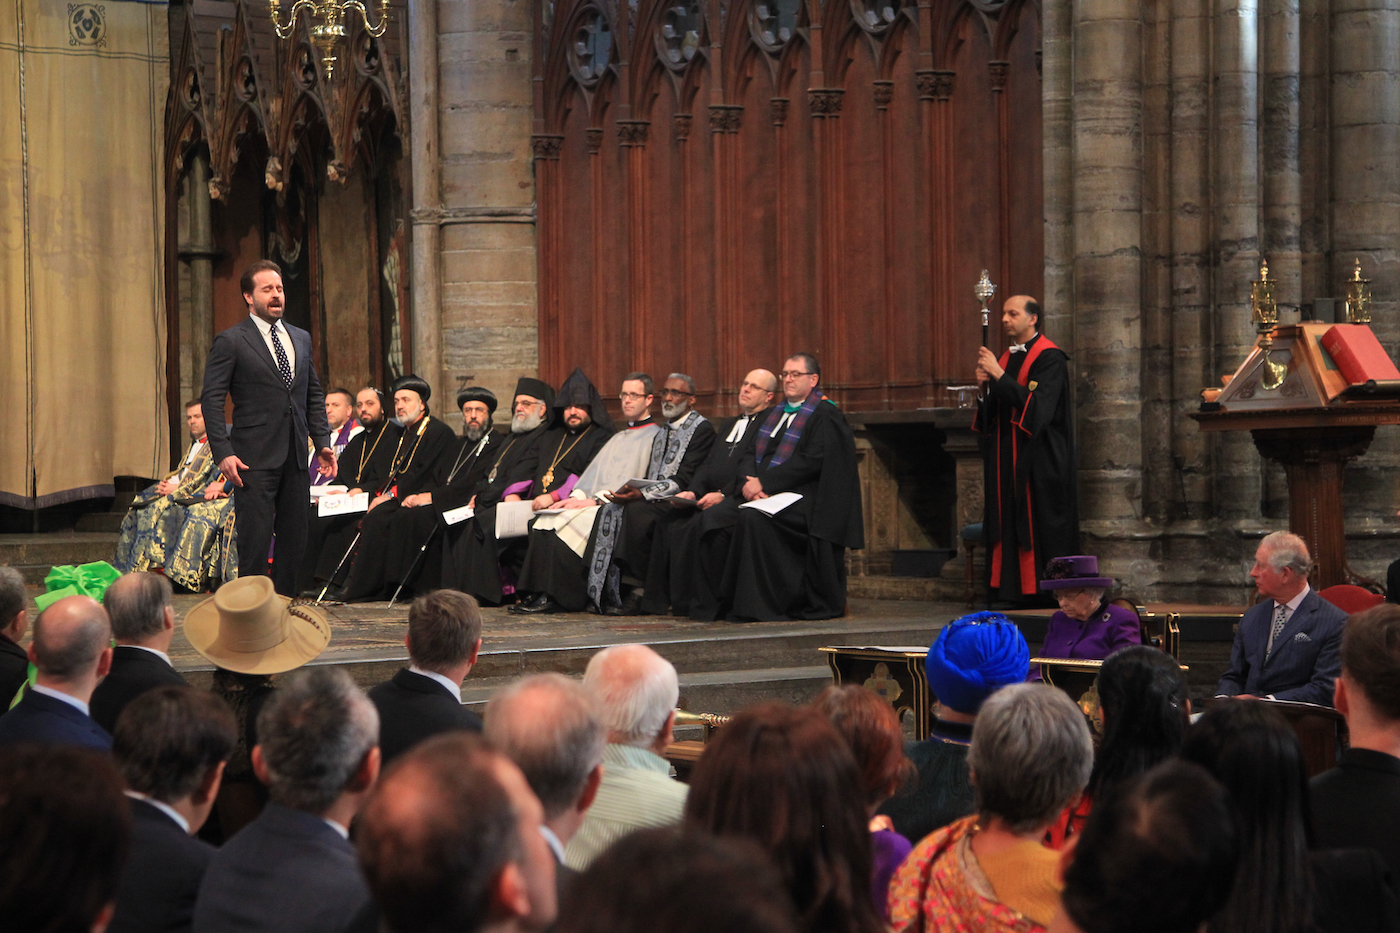 Methodist Central Hall Represented at Commonwealth Day